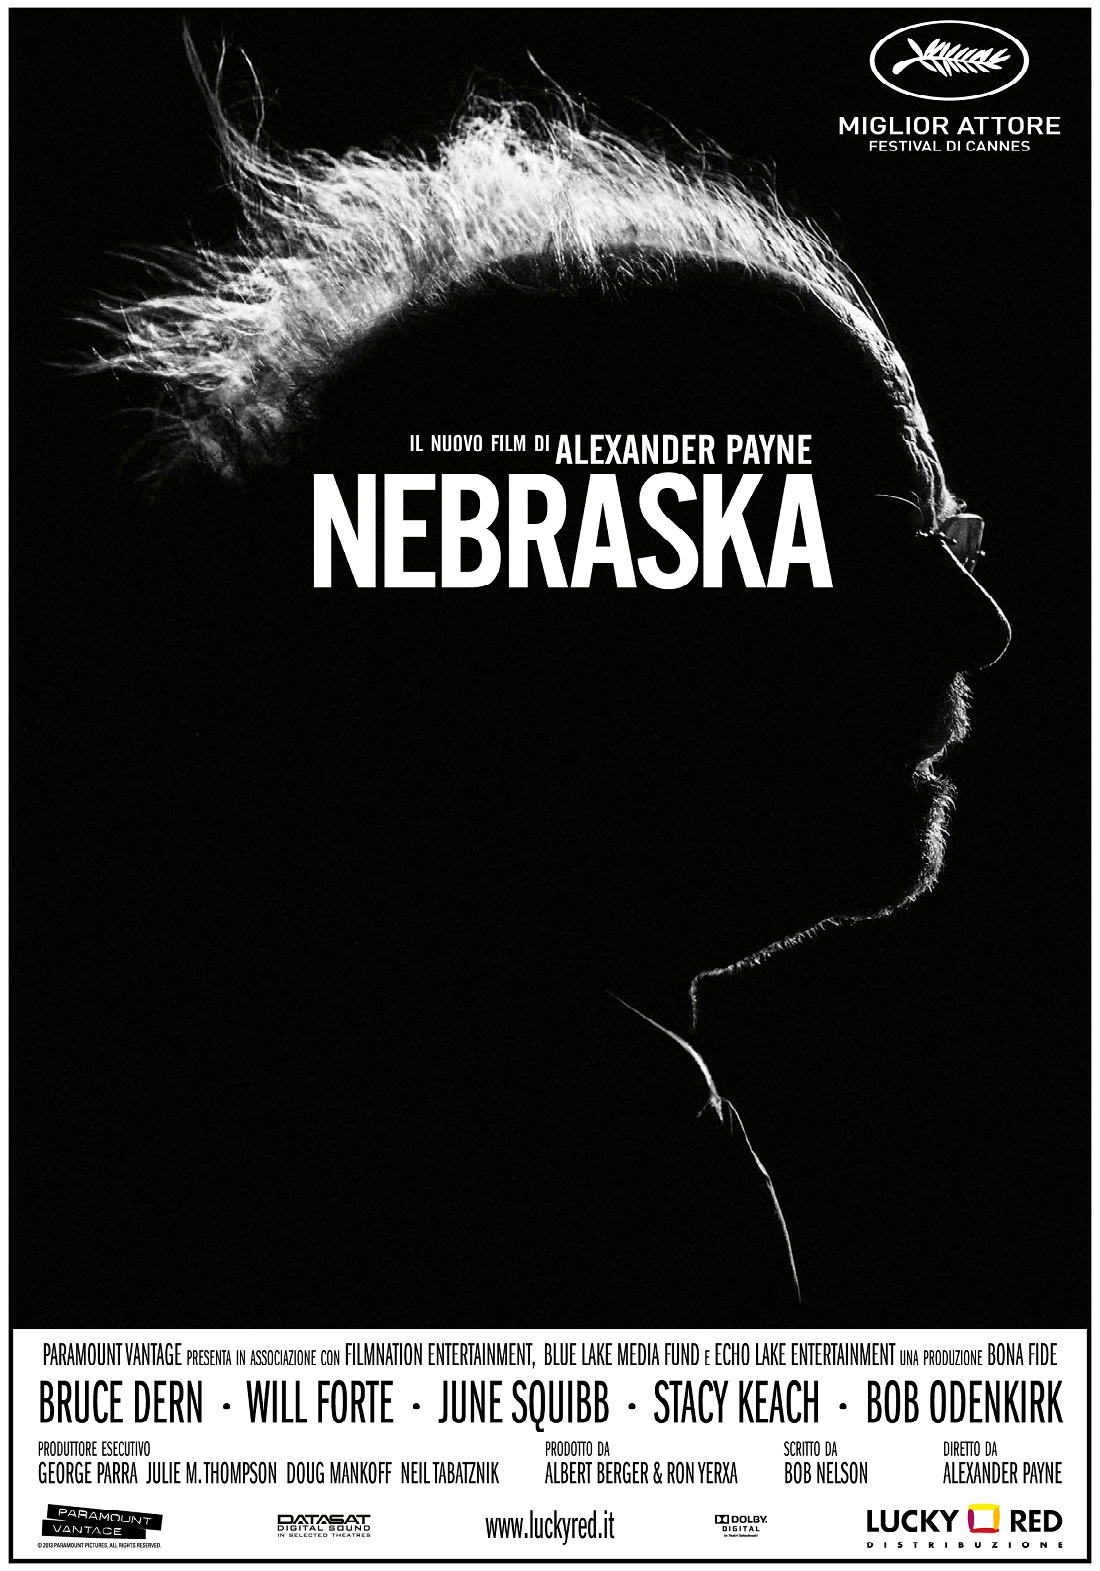 Nebraska: New Topographies - La Jetée - Corsi di Fotografia, Video, Filmaking, Grafica